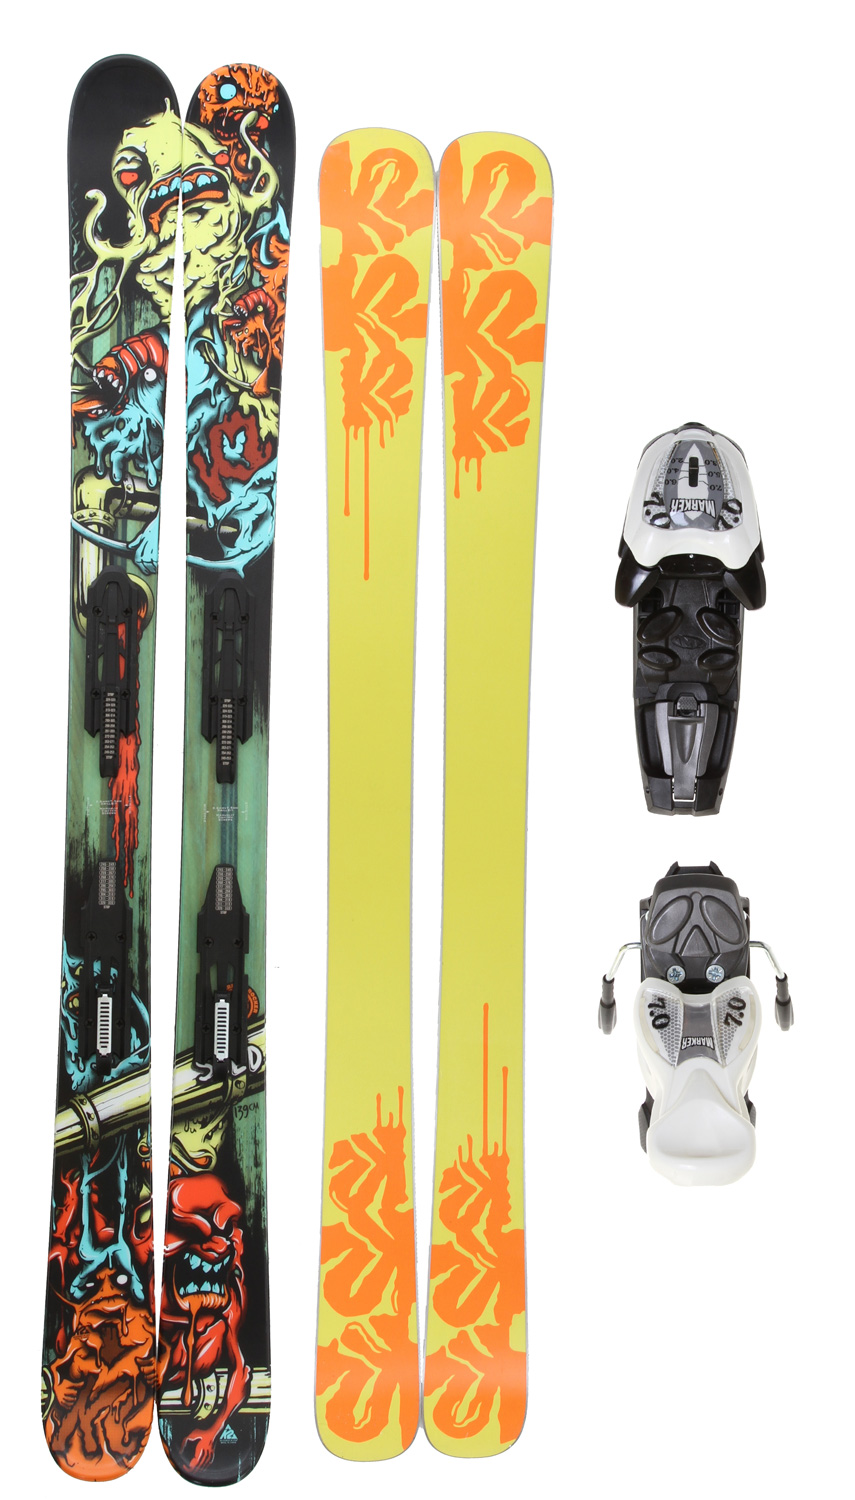 Ski This ski comes in at 85mm underfoot, giving the junior ripper who skis the whole mountain a chance to blast through adverse conditions and rage through the good stuff. The Bad Seed's All-Terrain Rocker makes it versatile enough for any condition, on or off piste. Plus, it can handle the park if your kid likes the taste of big air. This is truly an all-around ski for the all-around mini shredder. Key Features of the K2 Bad Seed Skis w/ Fastrack2 7.0 Bindings: Built with All-Terrain Rocker Swap Base Wood Core Triaxial braiding PERFORMANCE: Powder: 50%, Park: 50% CONSTRUCTION: Cap-Triaxial Braided Aspen/Paulownia RADIUS: 12m @ 139/ Directional Taper BINDING OPTIONS: FasTrack2 7.0 Tip/Waist/Tail Width: 113/85/104 - $343.95